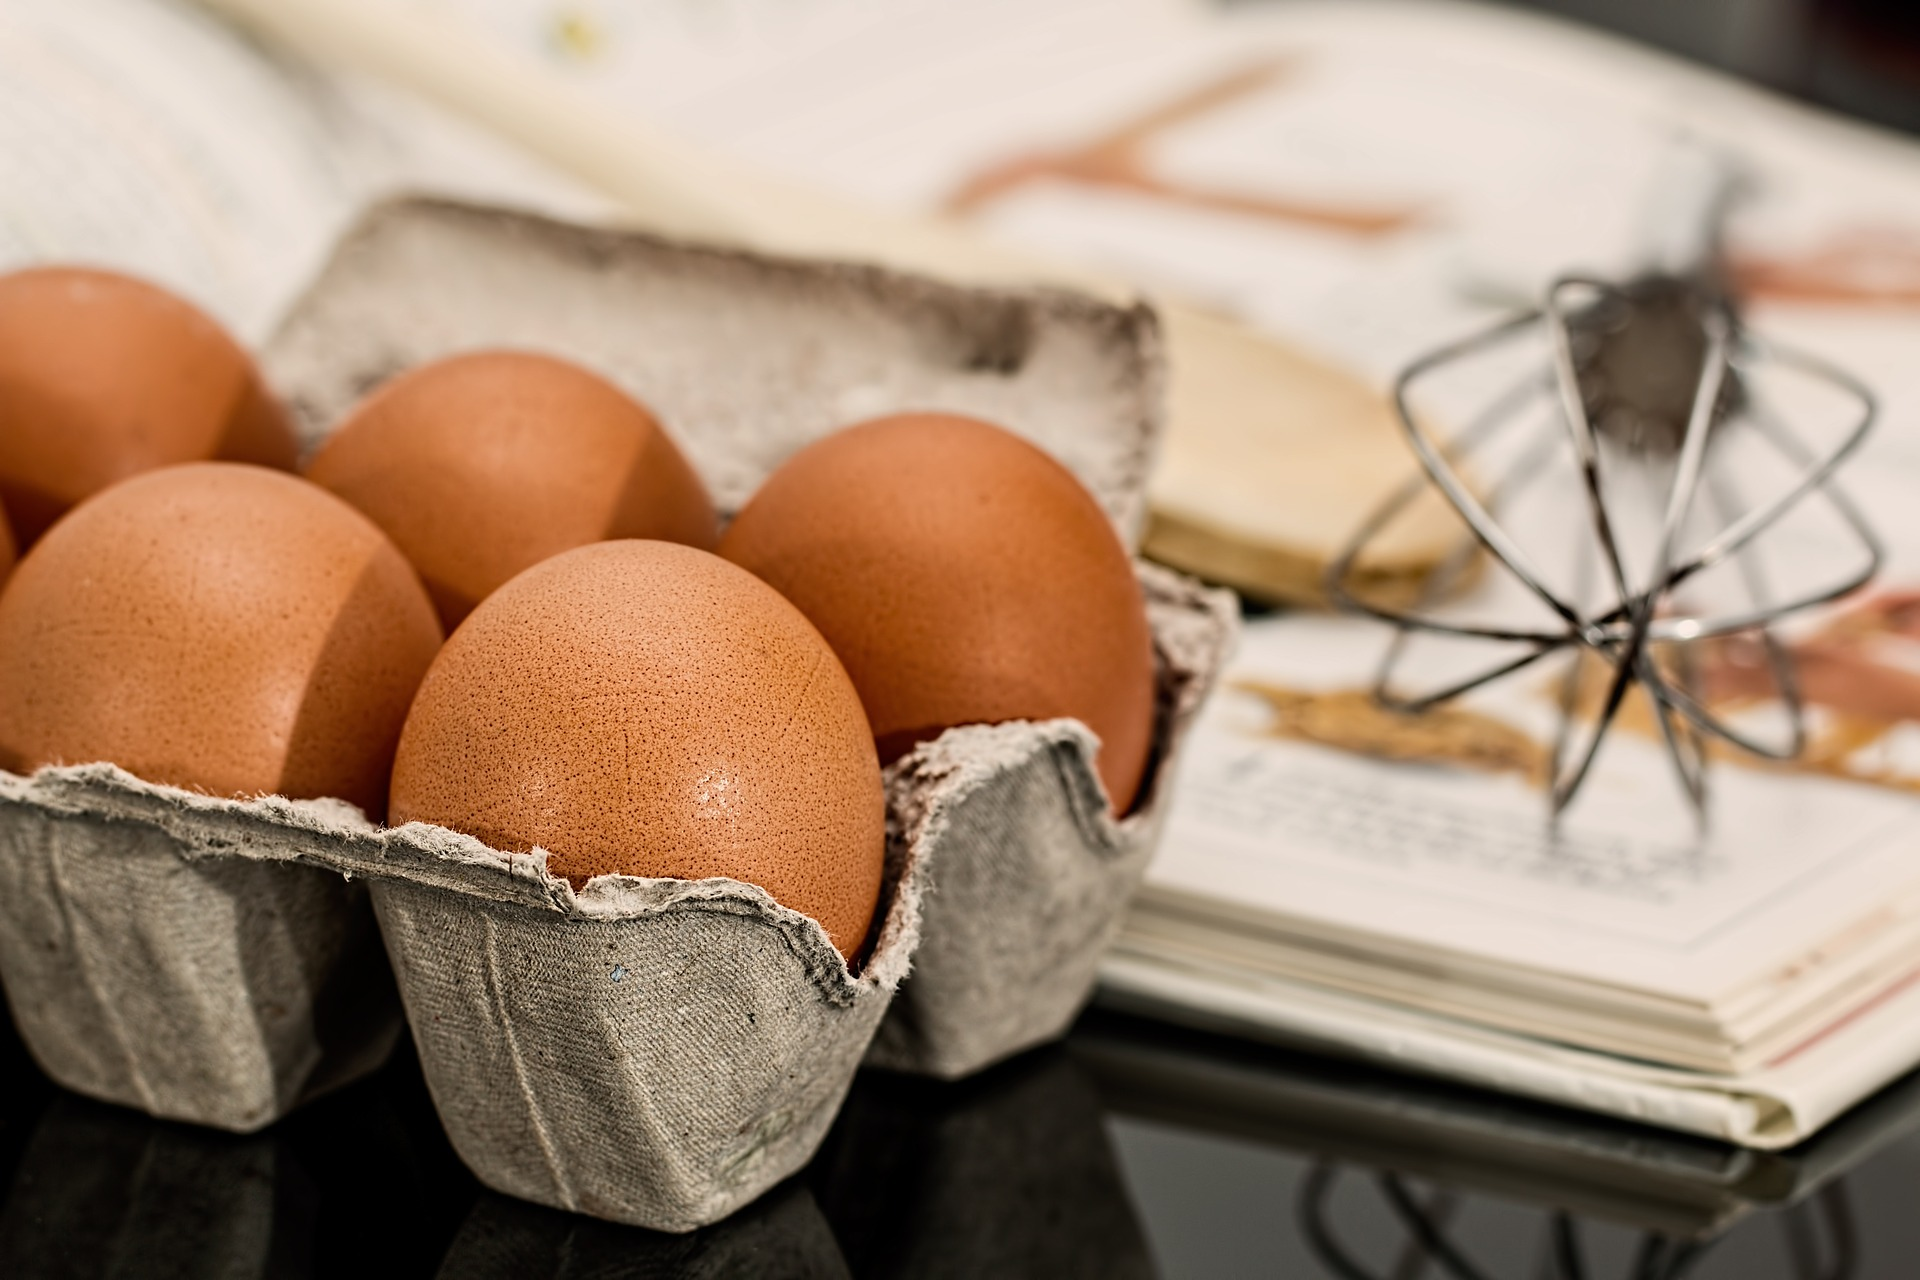 What are the benefits of chicken eggs?